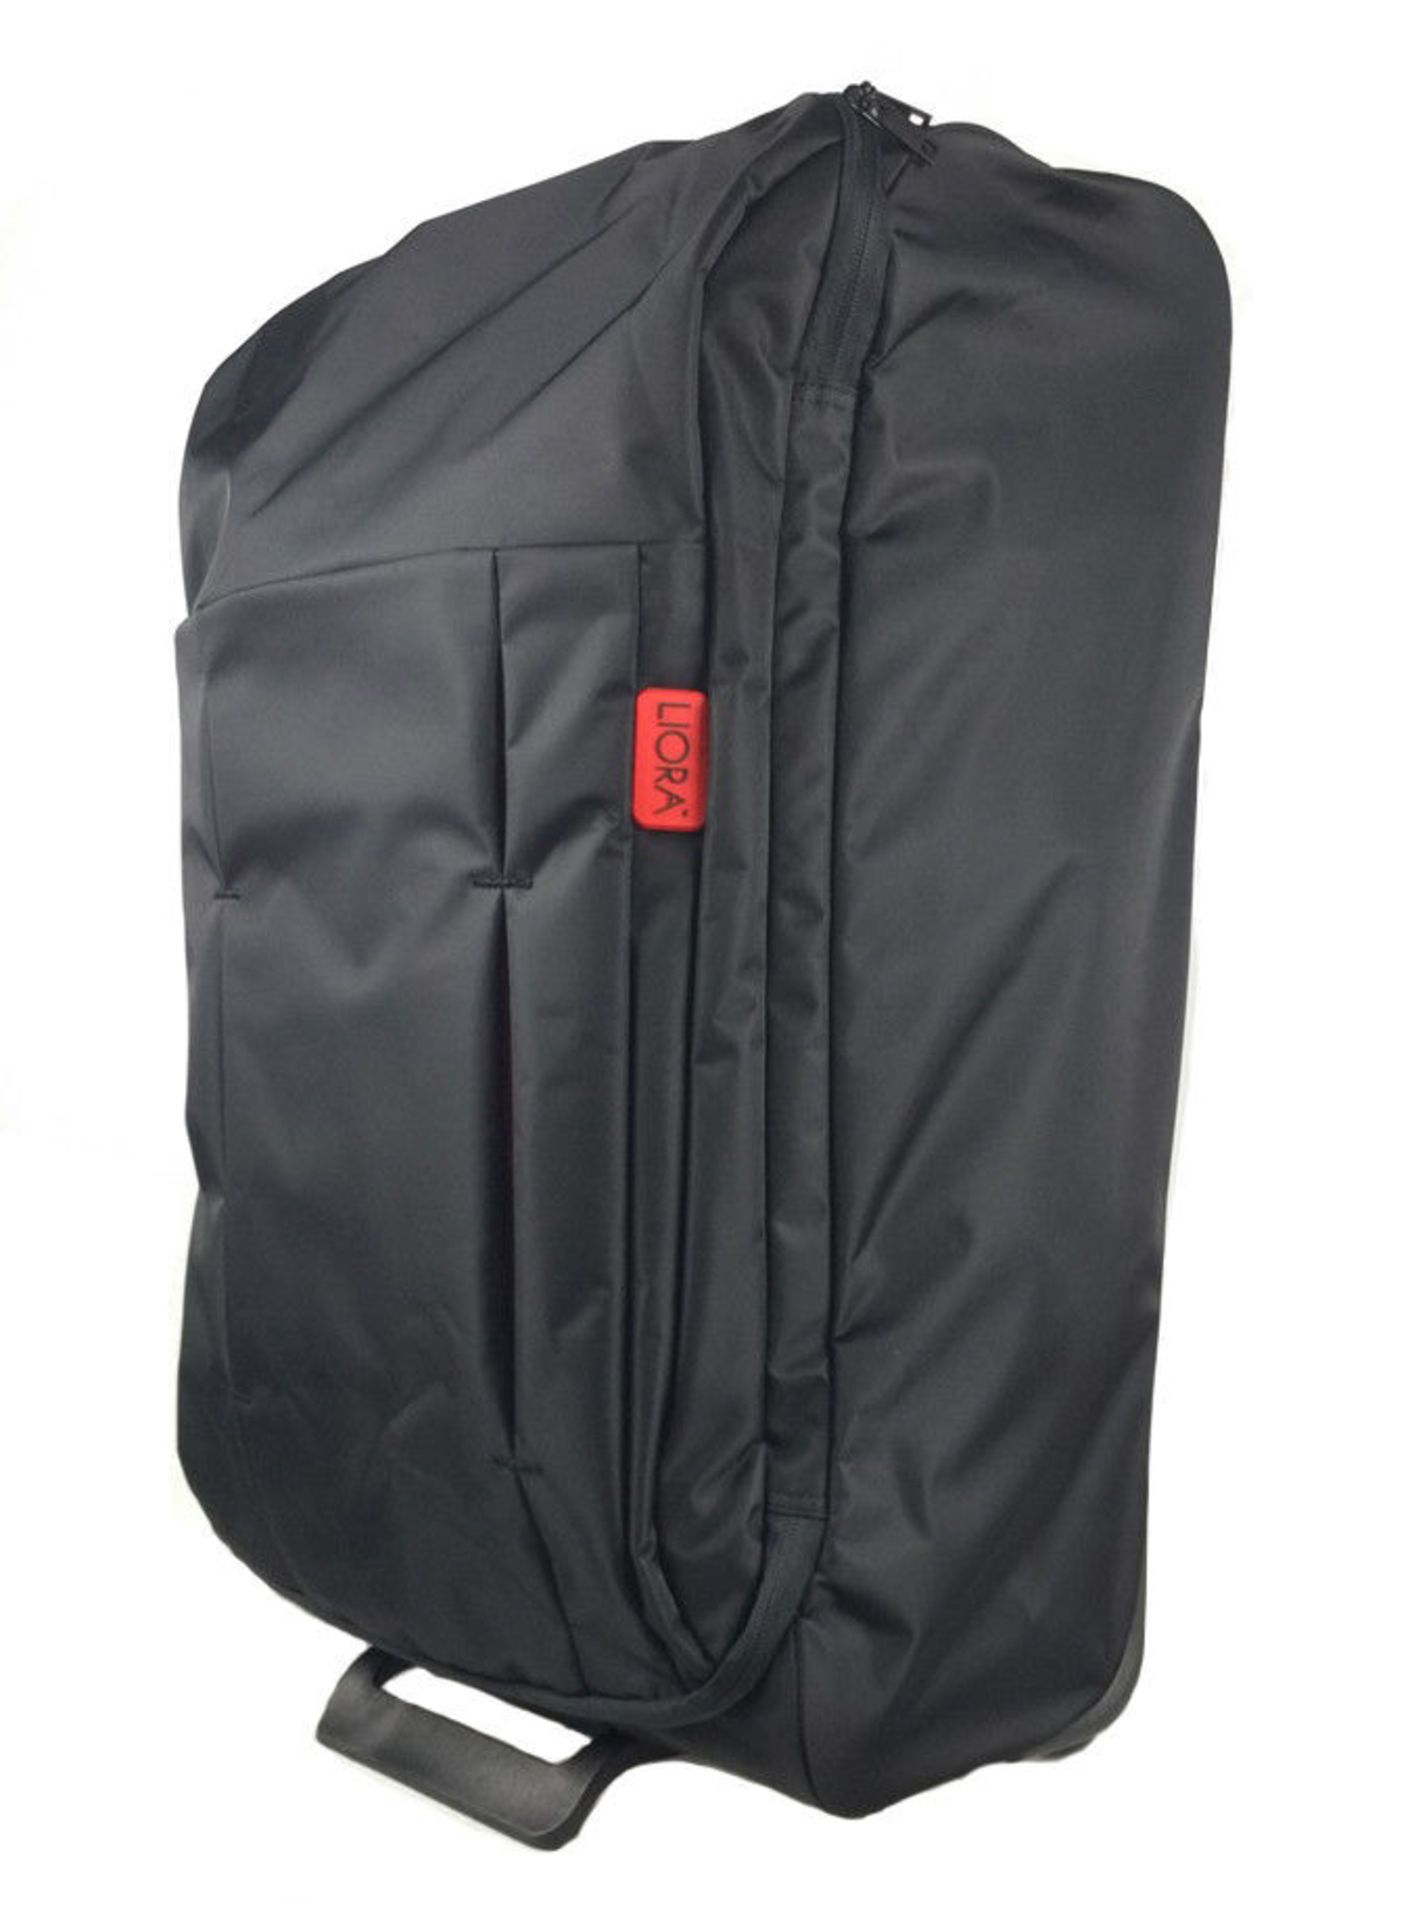 Lot 10126 - V Brand New Liora Lightweight 26cm Collapsible Rollercase Suitcase ISP 34.99